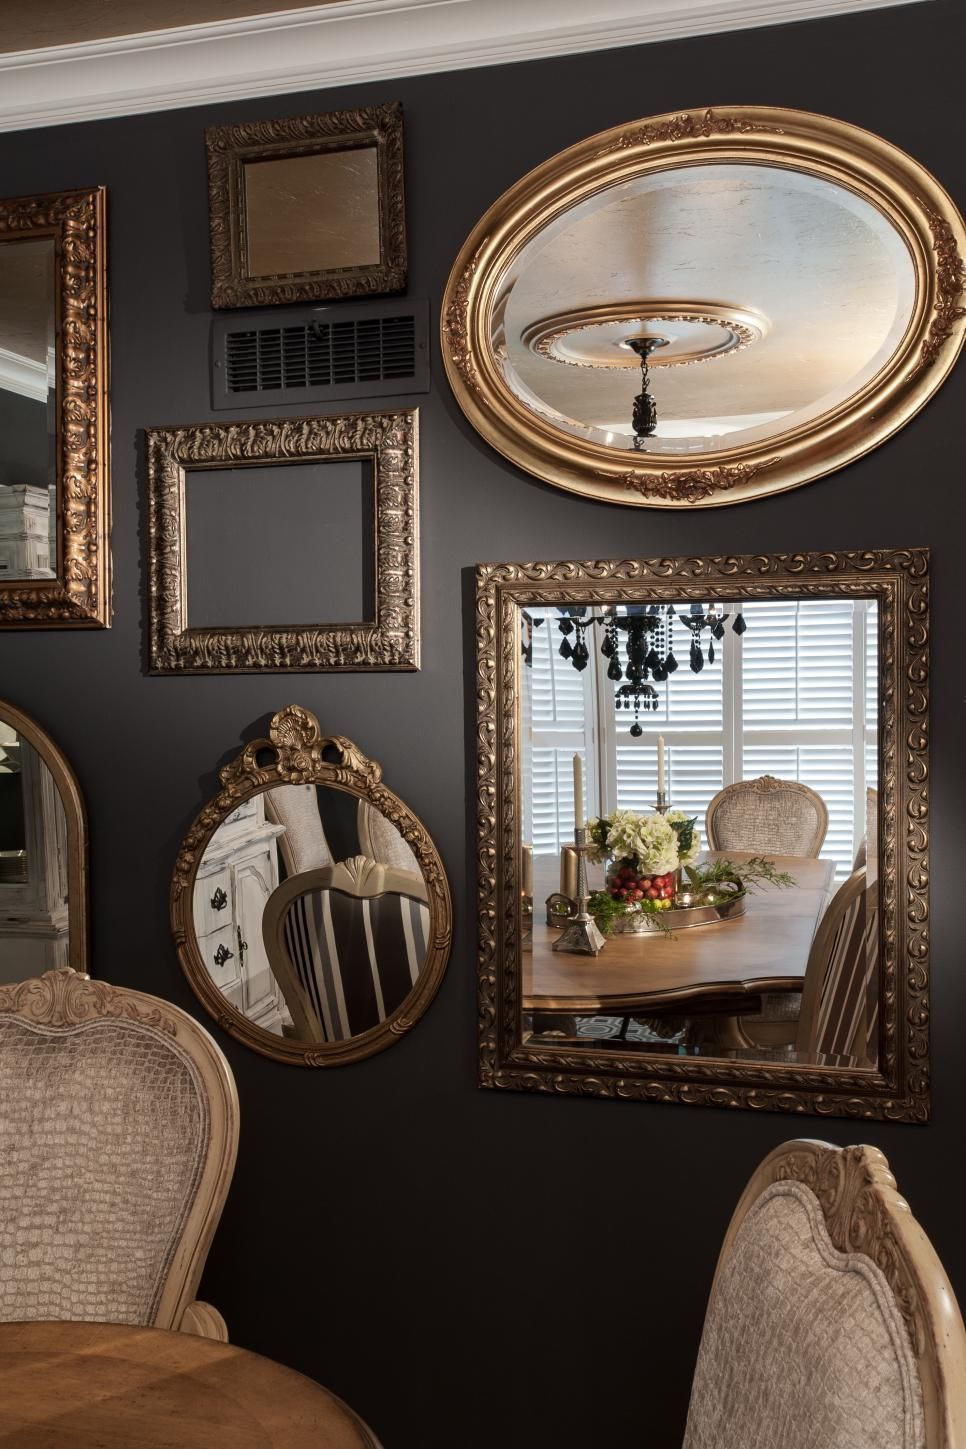 14 first rate living room wall mirror lights ideas in on ideas for decorating entryway contemporary wall mirrors id=85128